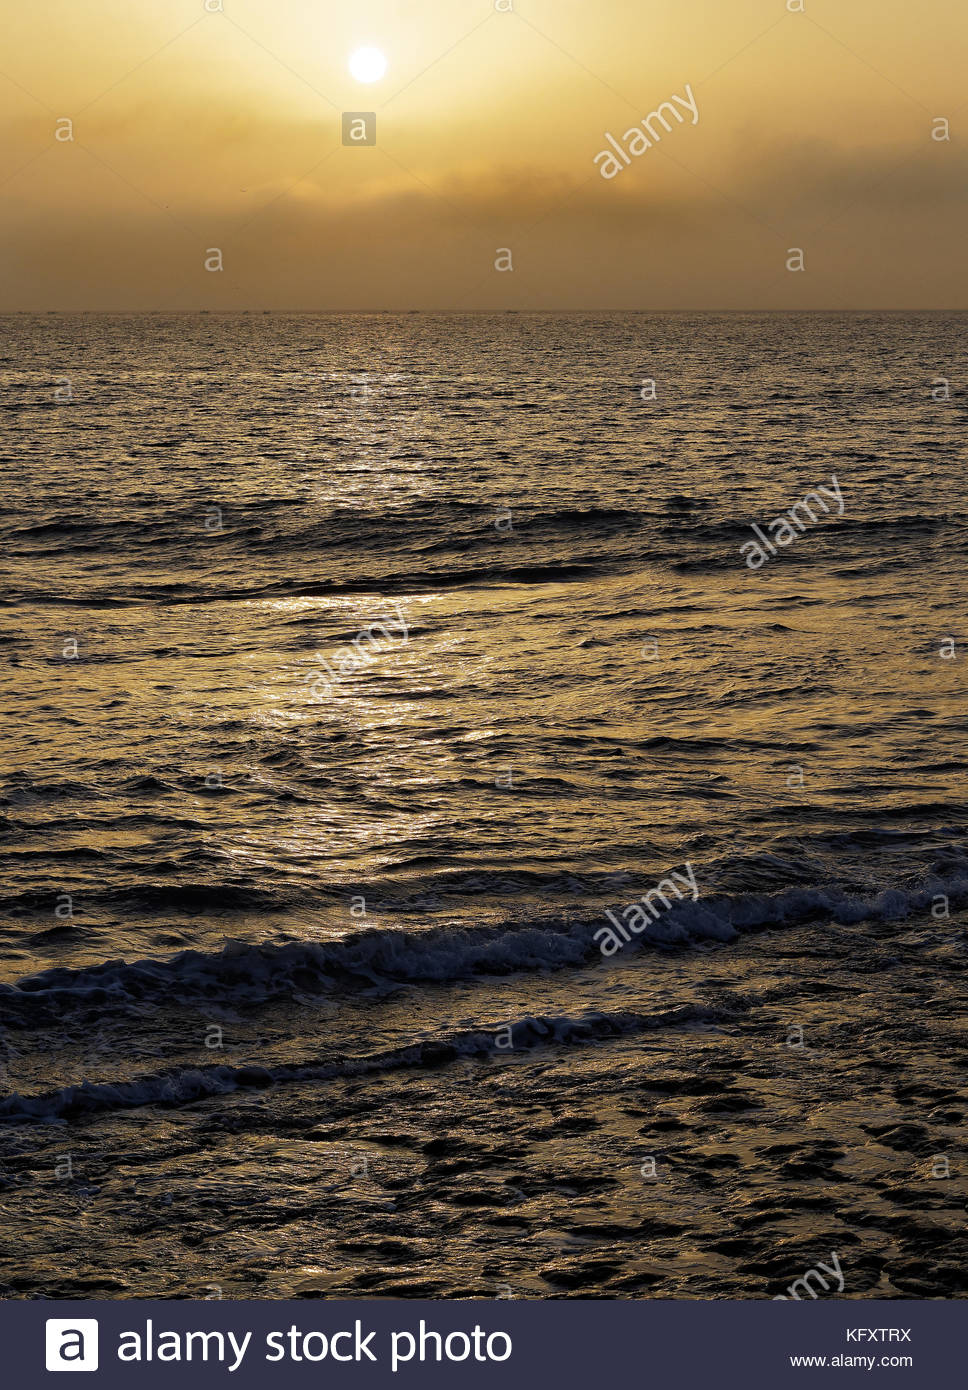 Fishing fleet on the horizon, Sun with sea mist, early morning, River Tagus, Lisbon, Portugal - Stock Image